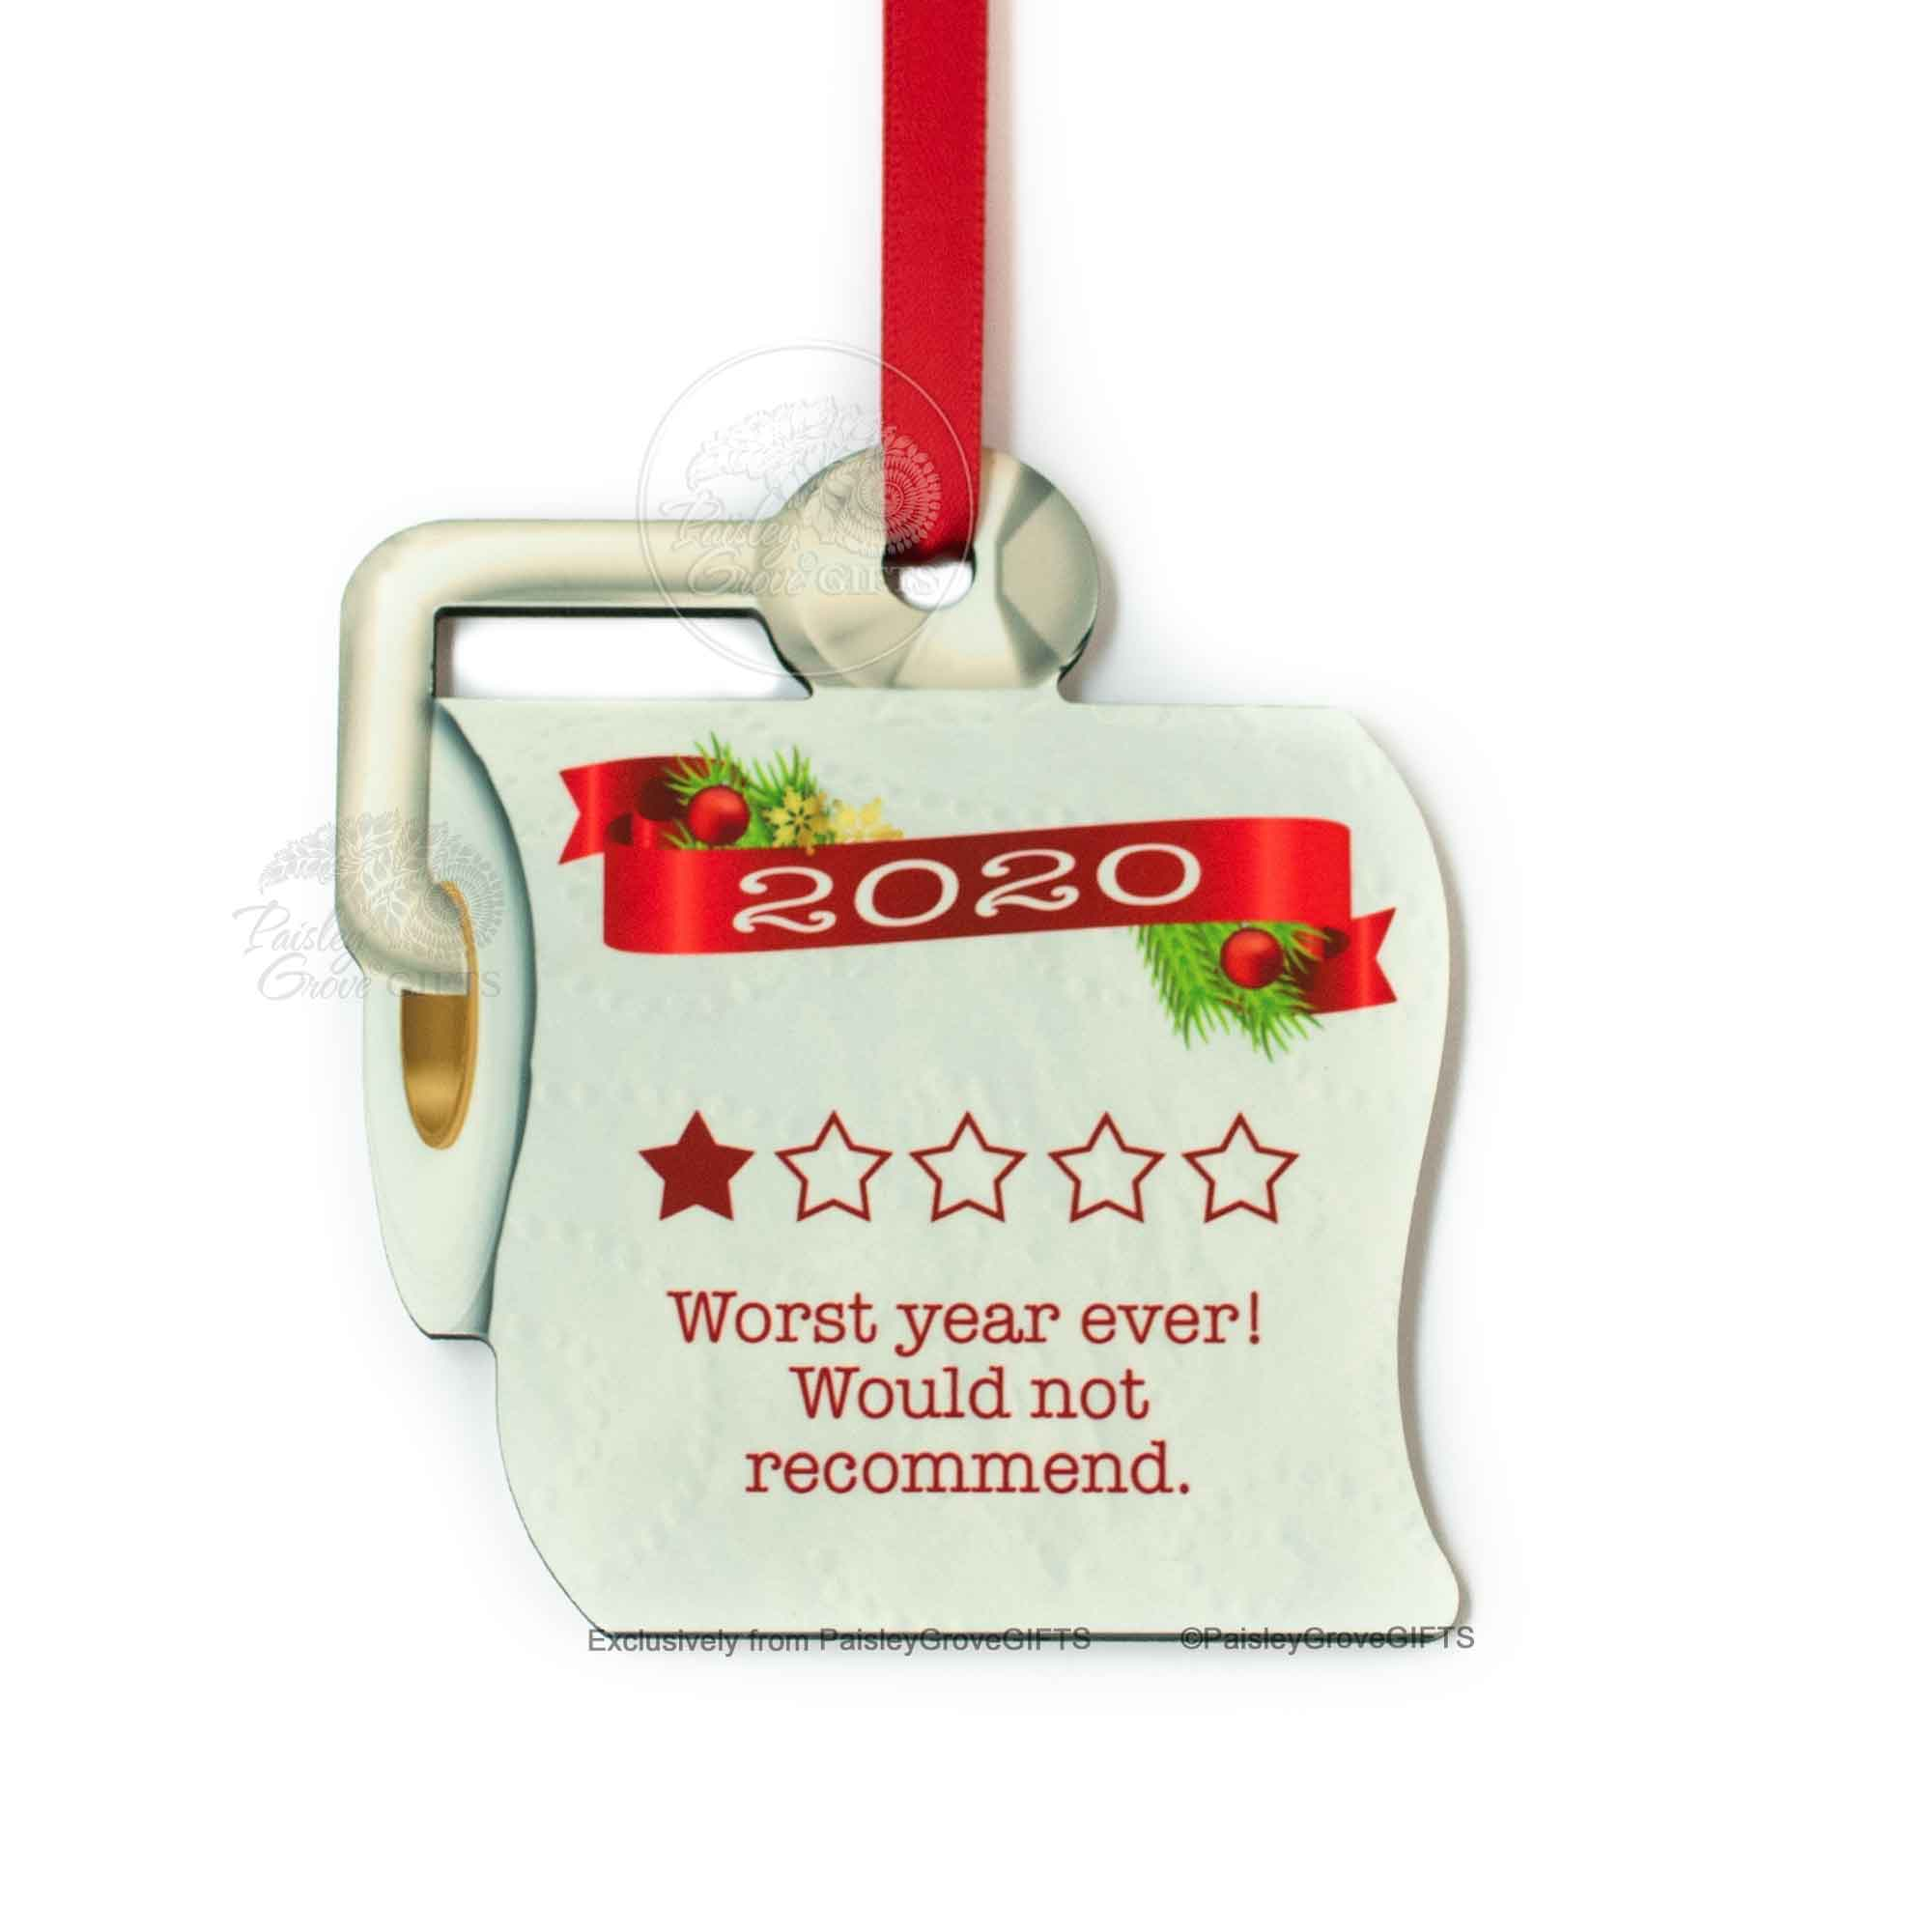 Copyright PaisleyGroveGIFTS S525a Funny Toilet Paper Christmas Ornament 2020 One Star Rating Would Not Recommend